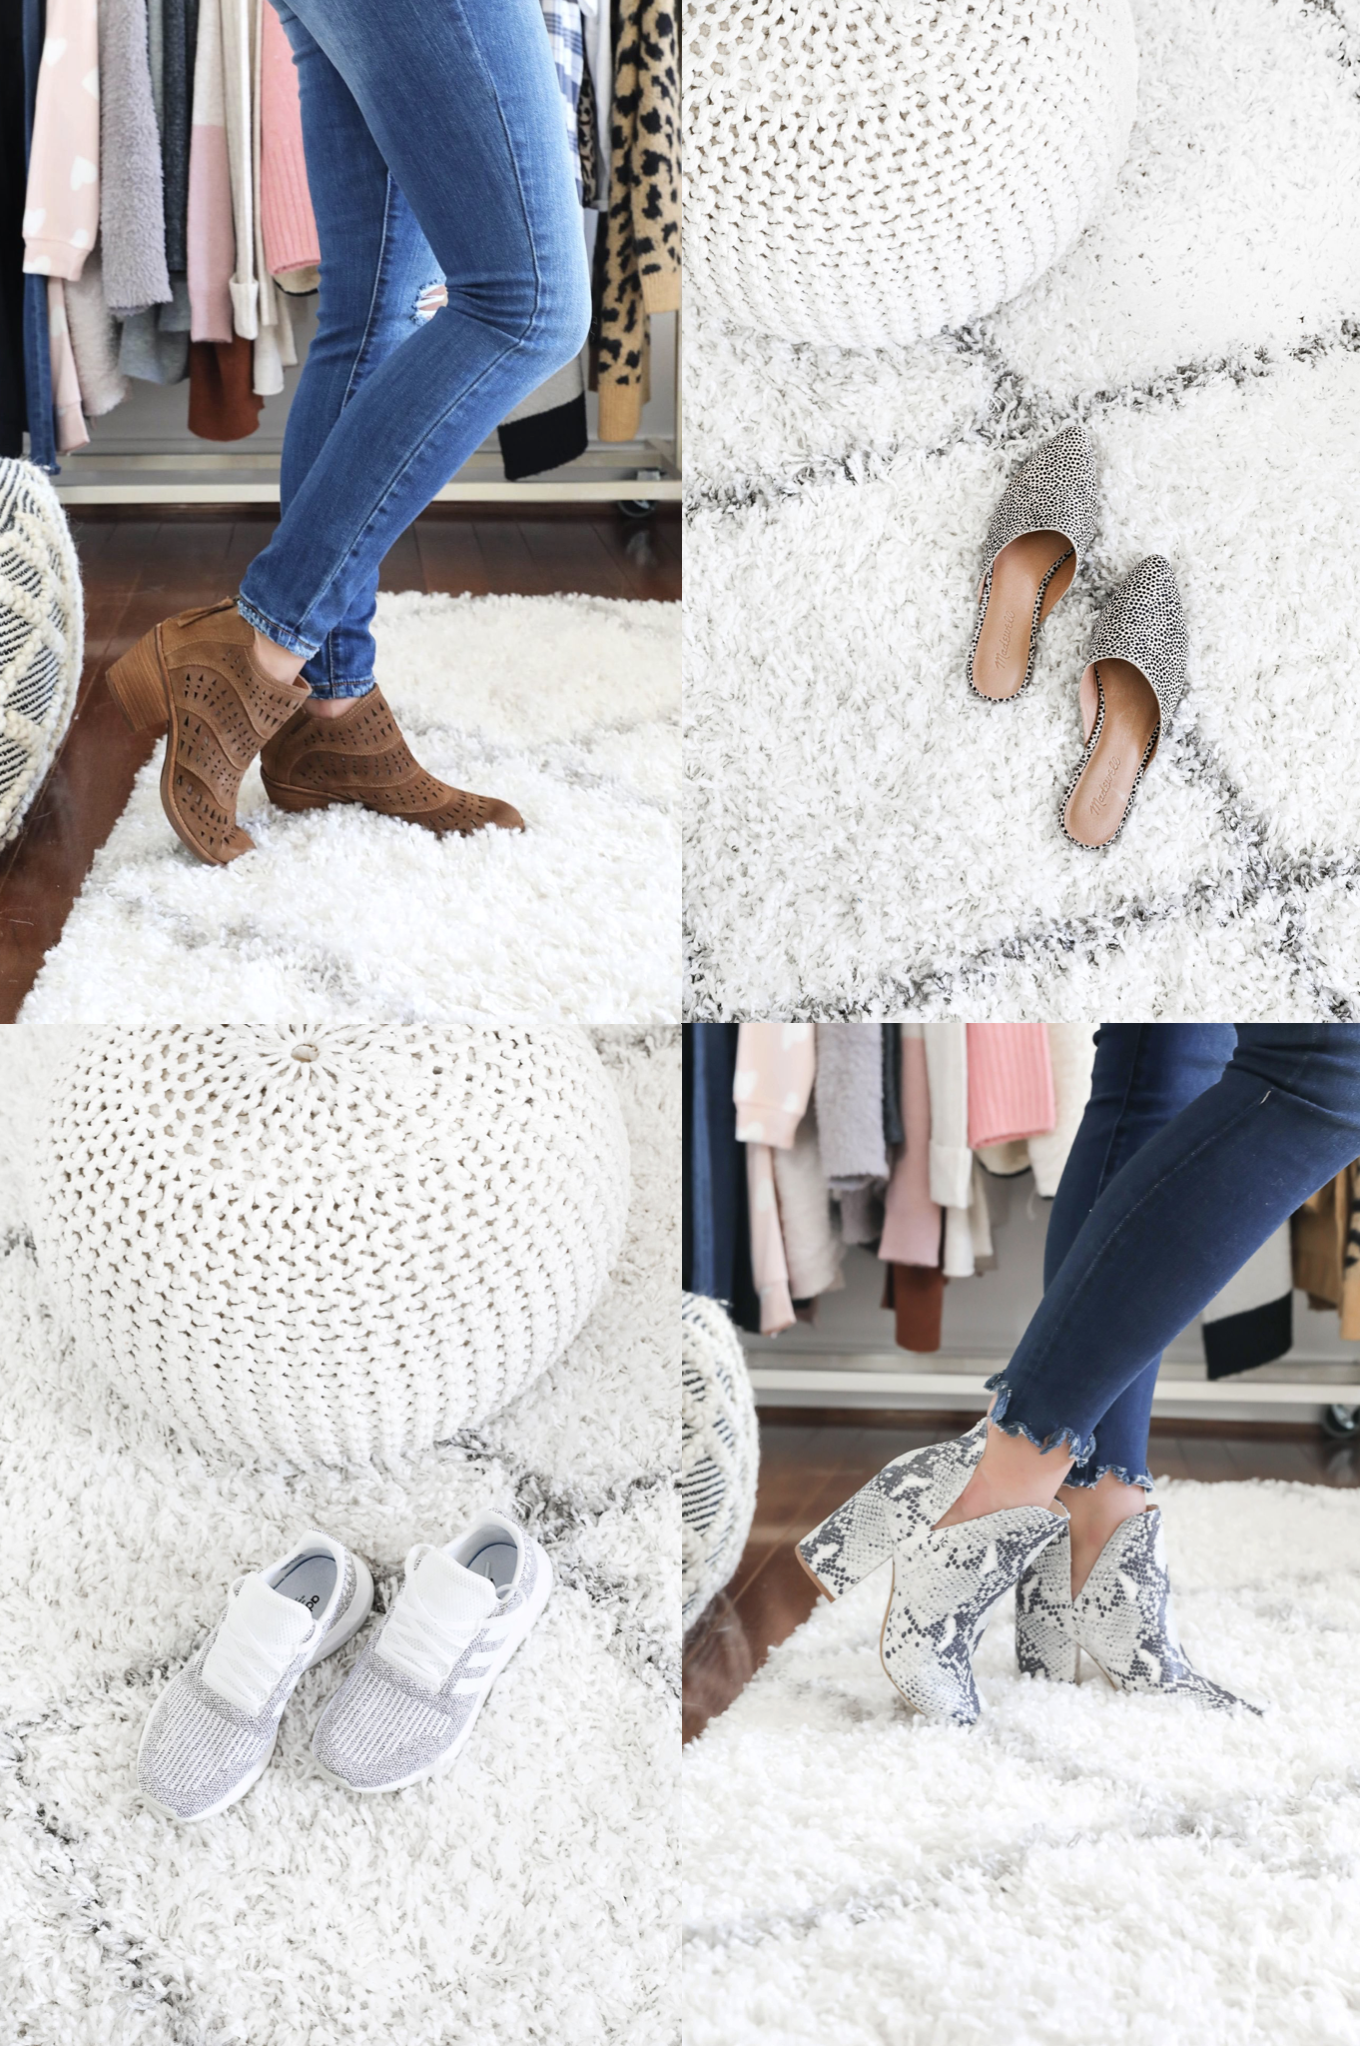 b95ea53cf Nordstrom Sale Shoes & Accessories Haul | Daily Dose of Charm